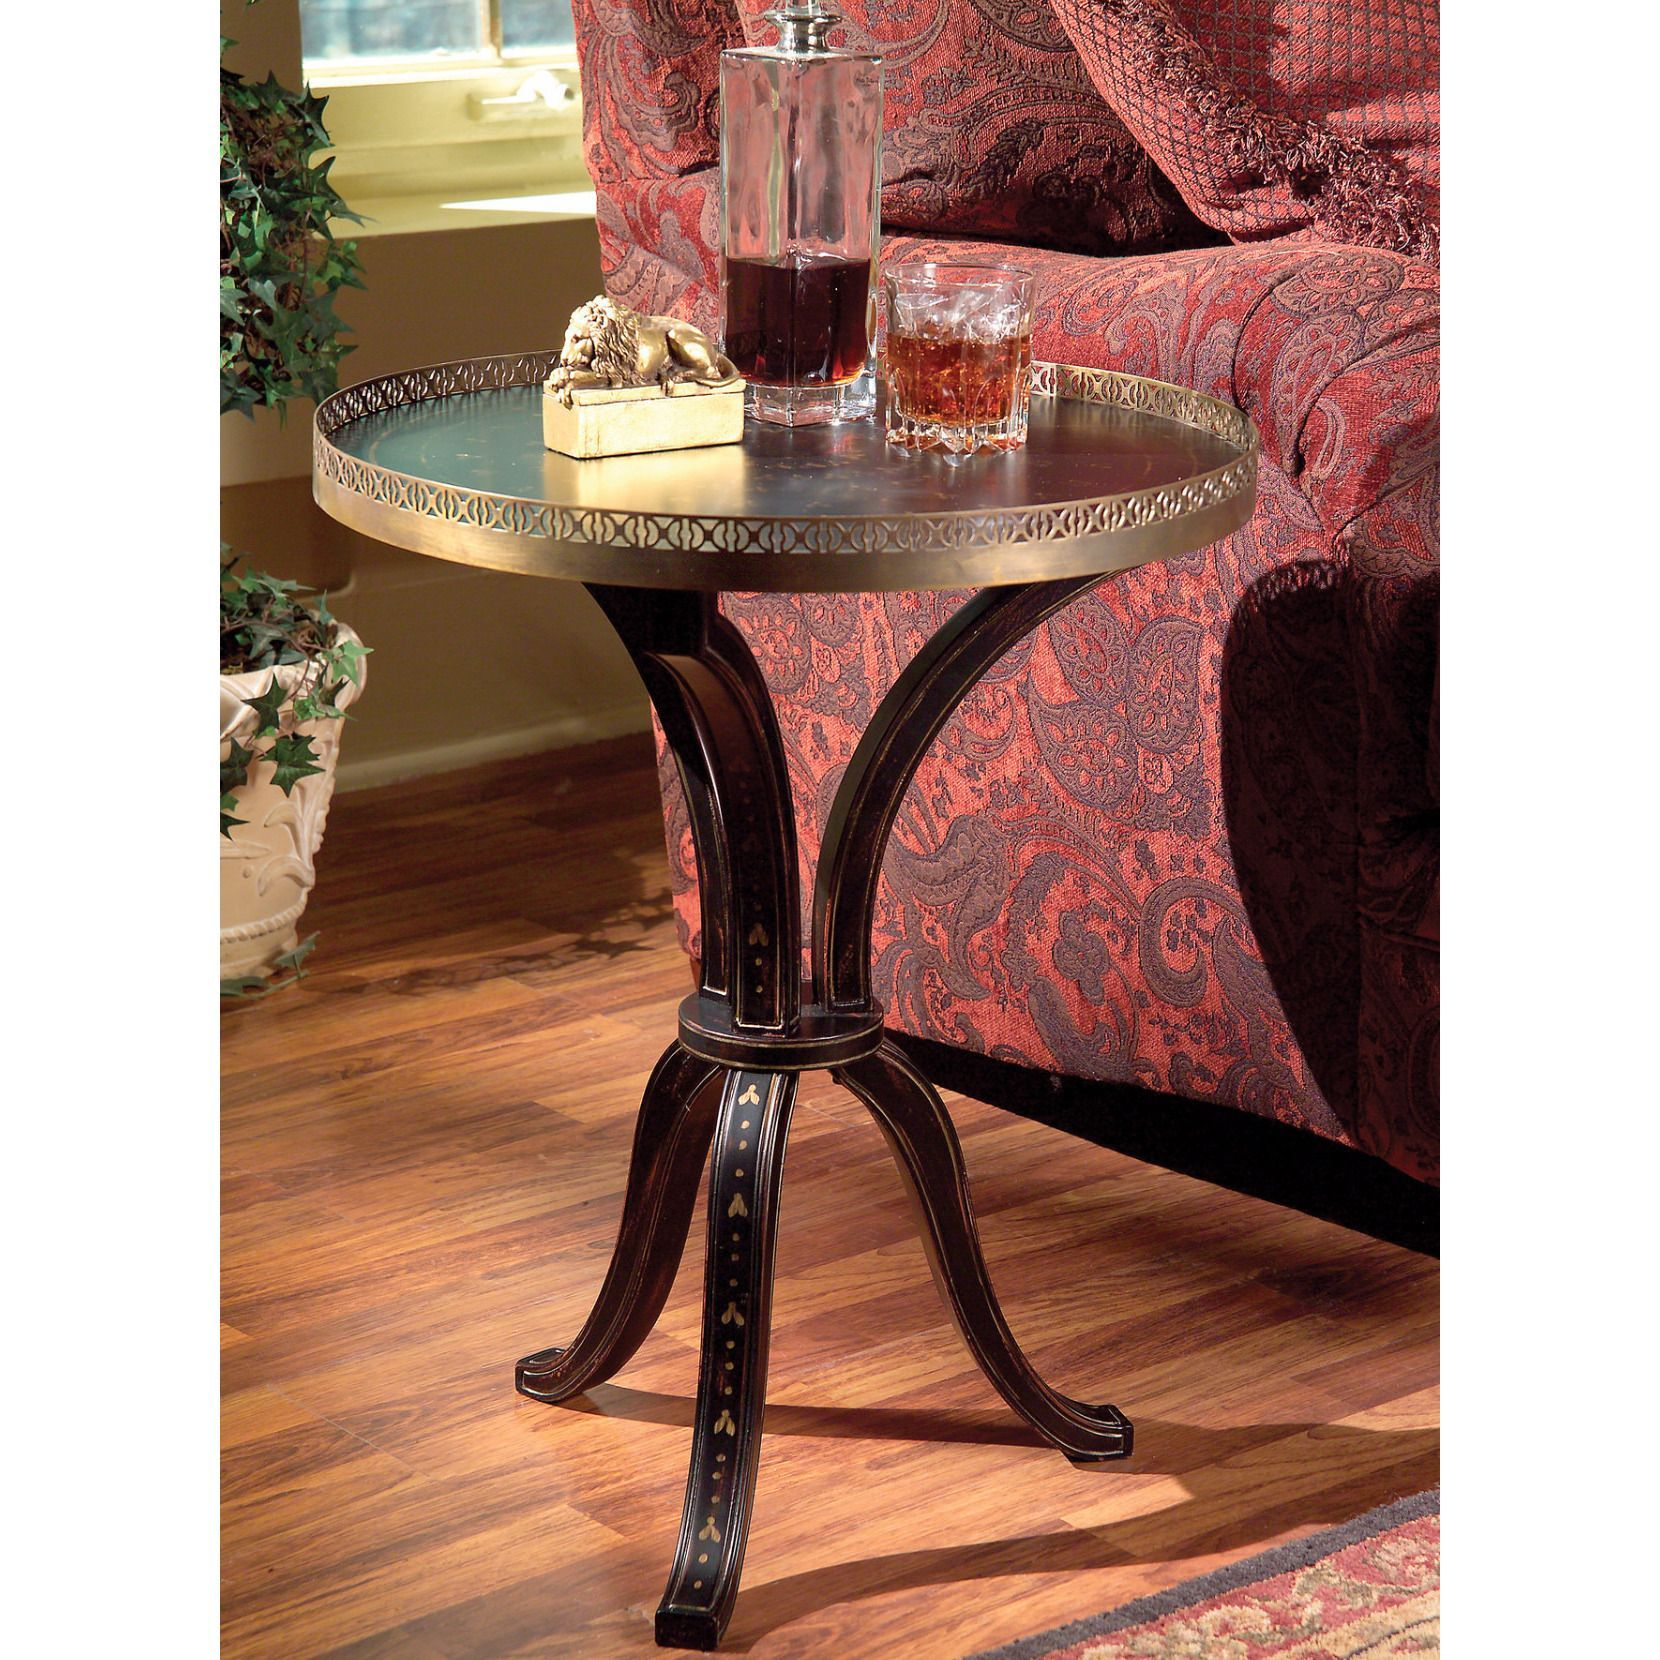 butler hand painted accent table products wood specialty company battery standard lamp dale tiffany ceiling lamps skinny couch glass coffee with shelf very narrow hall outdoor